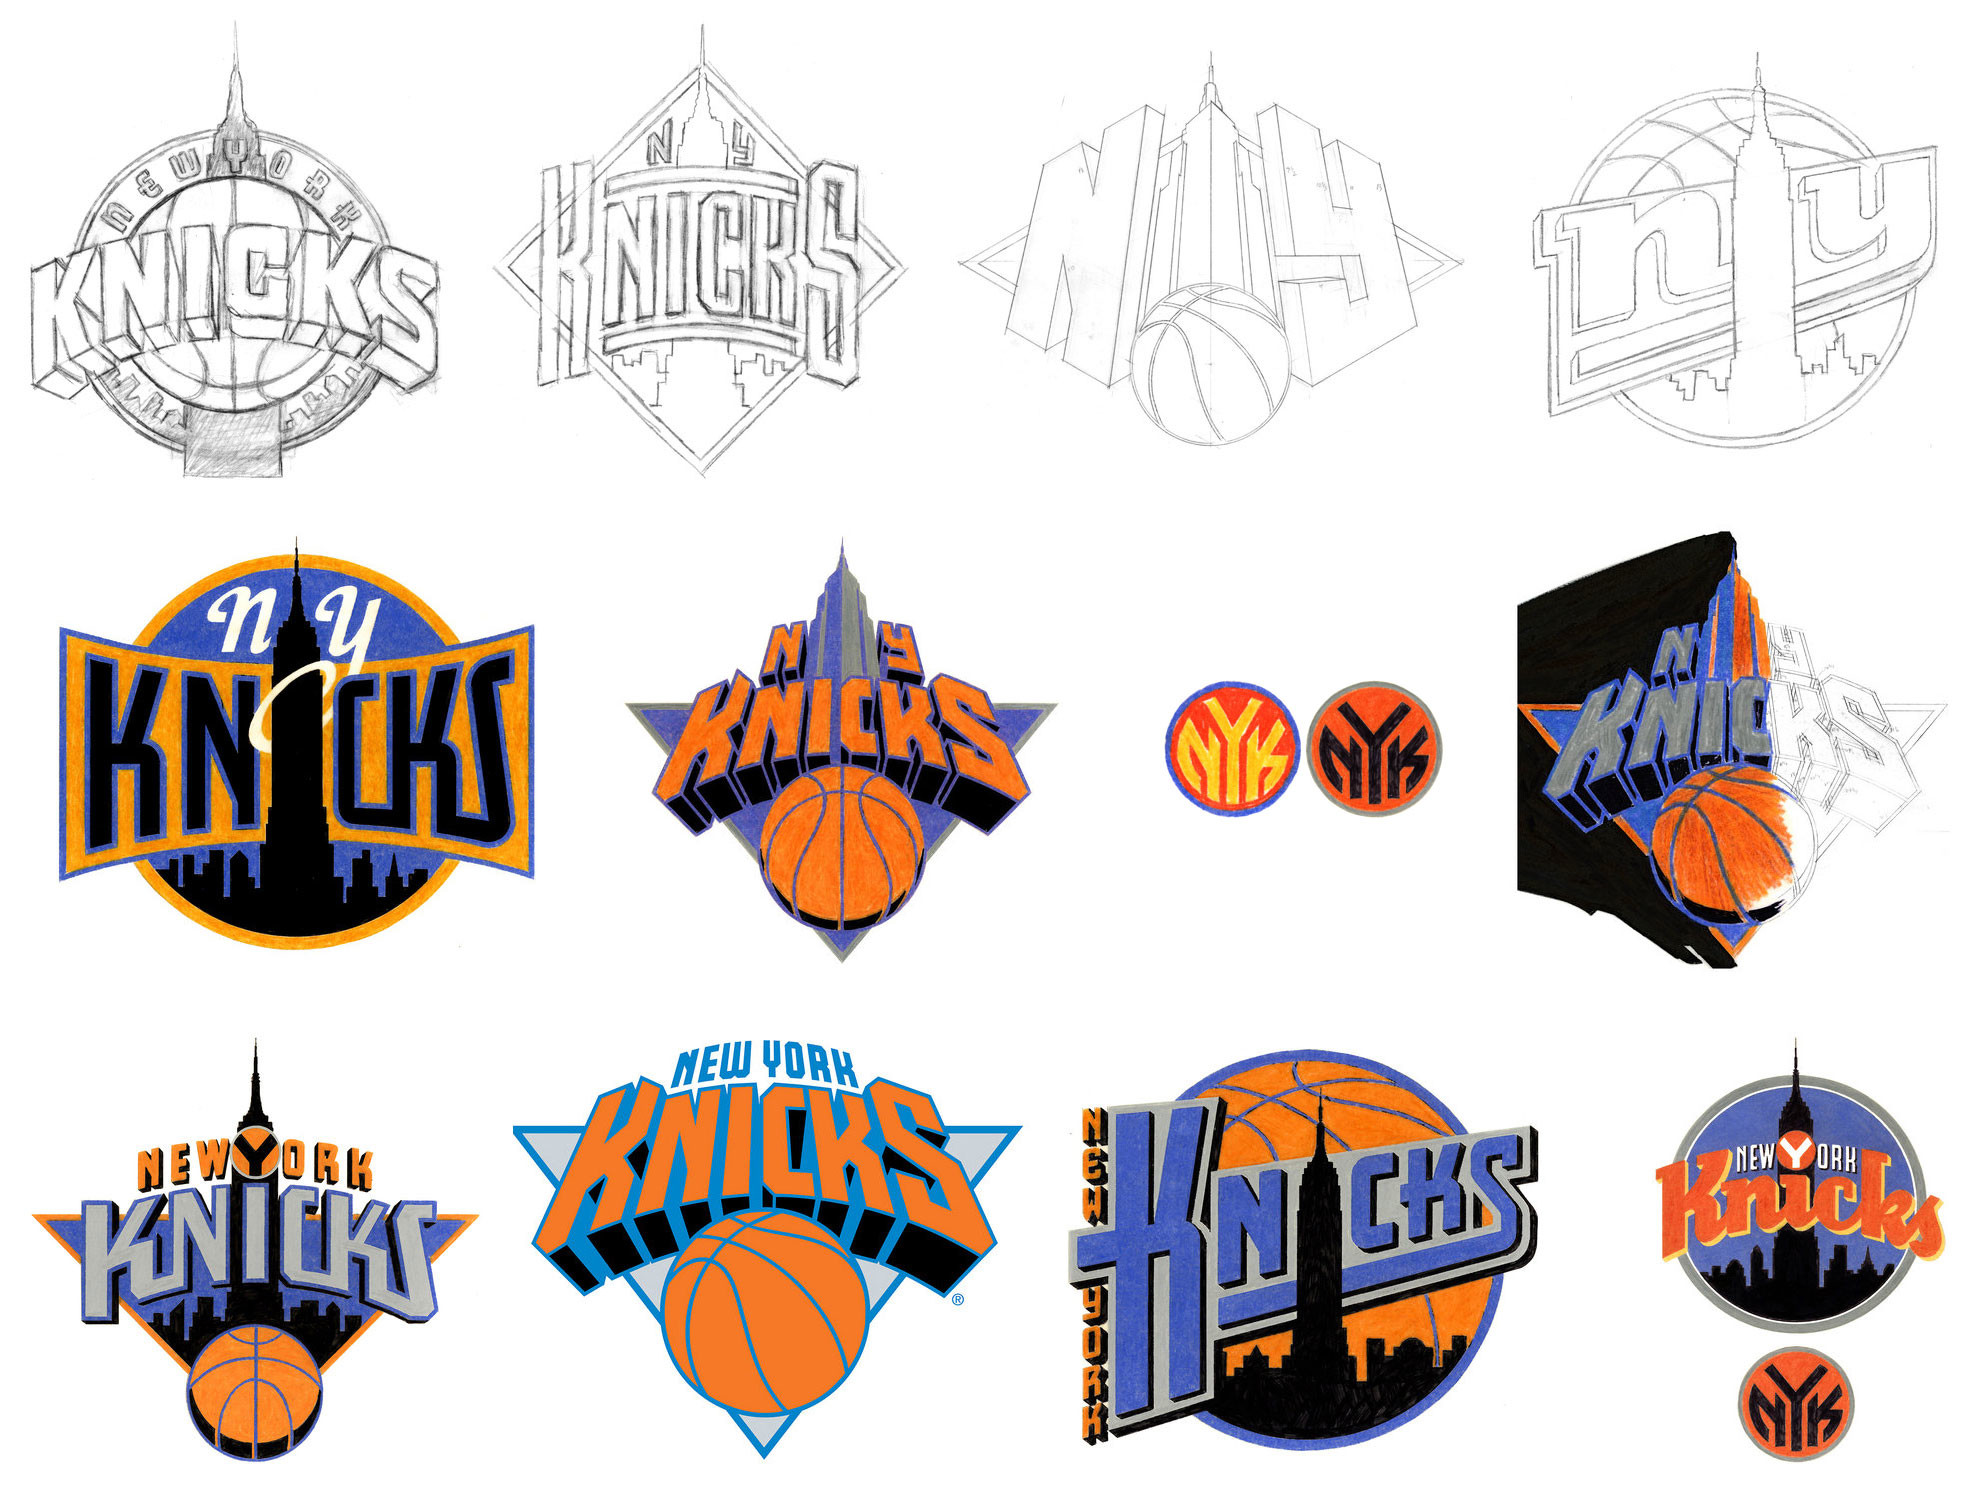 1981x1500 new york knicks galaxy s3 ...